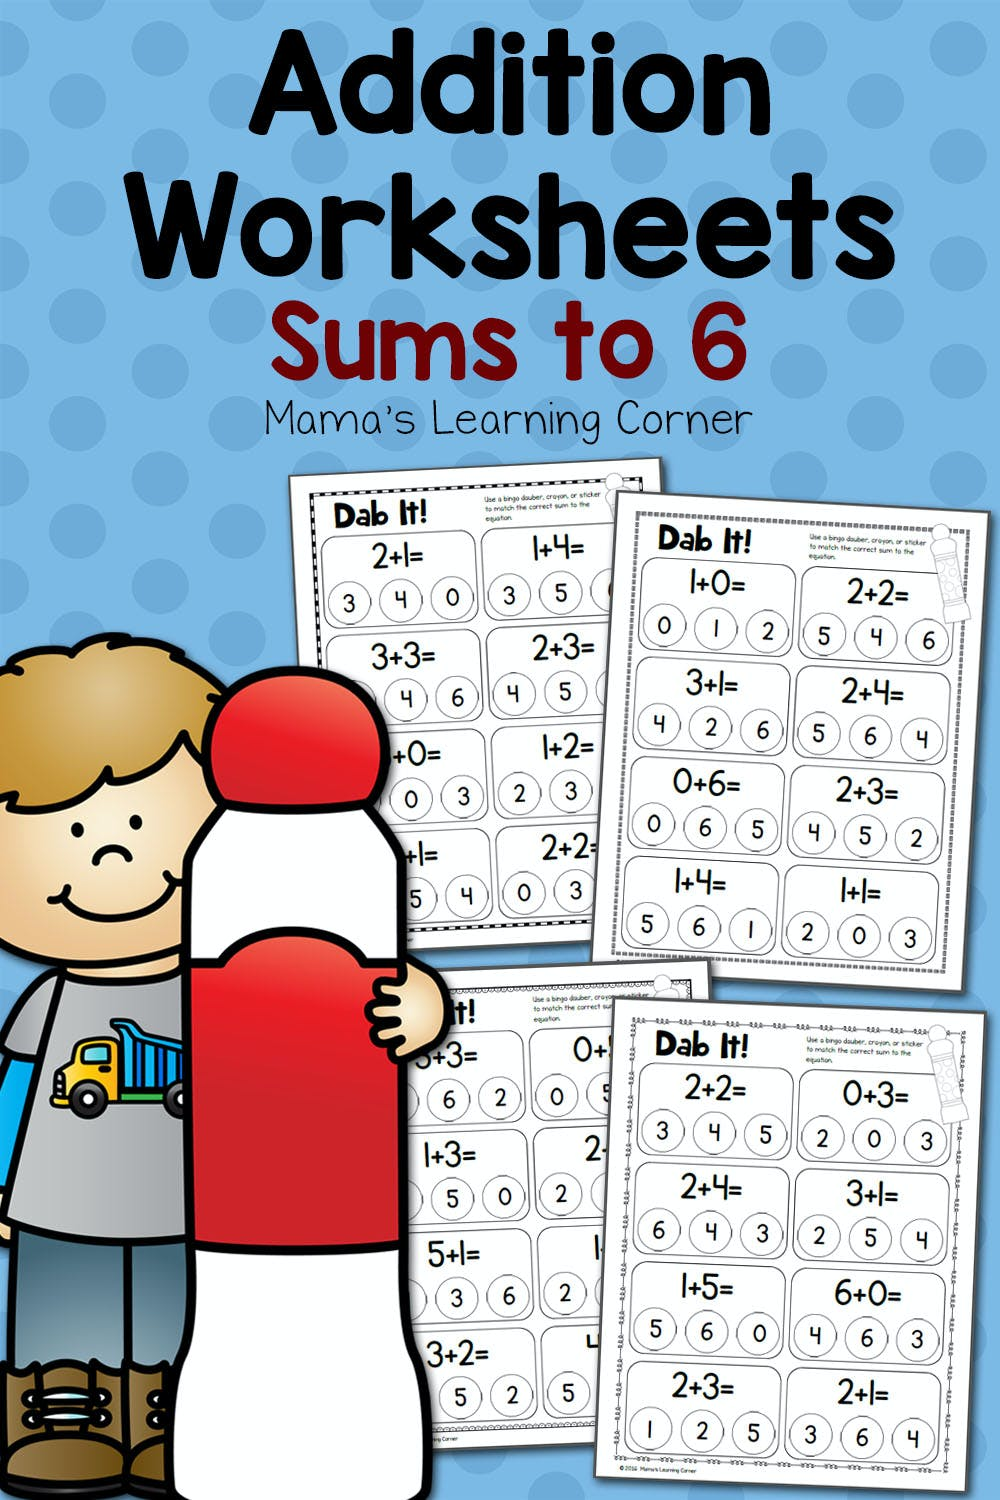 medium resolution of Dab It! Addition Worksheets - Sums to 6 - Mamas Learning Corner